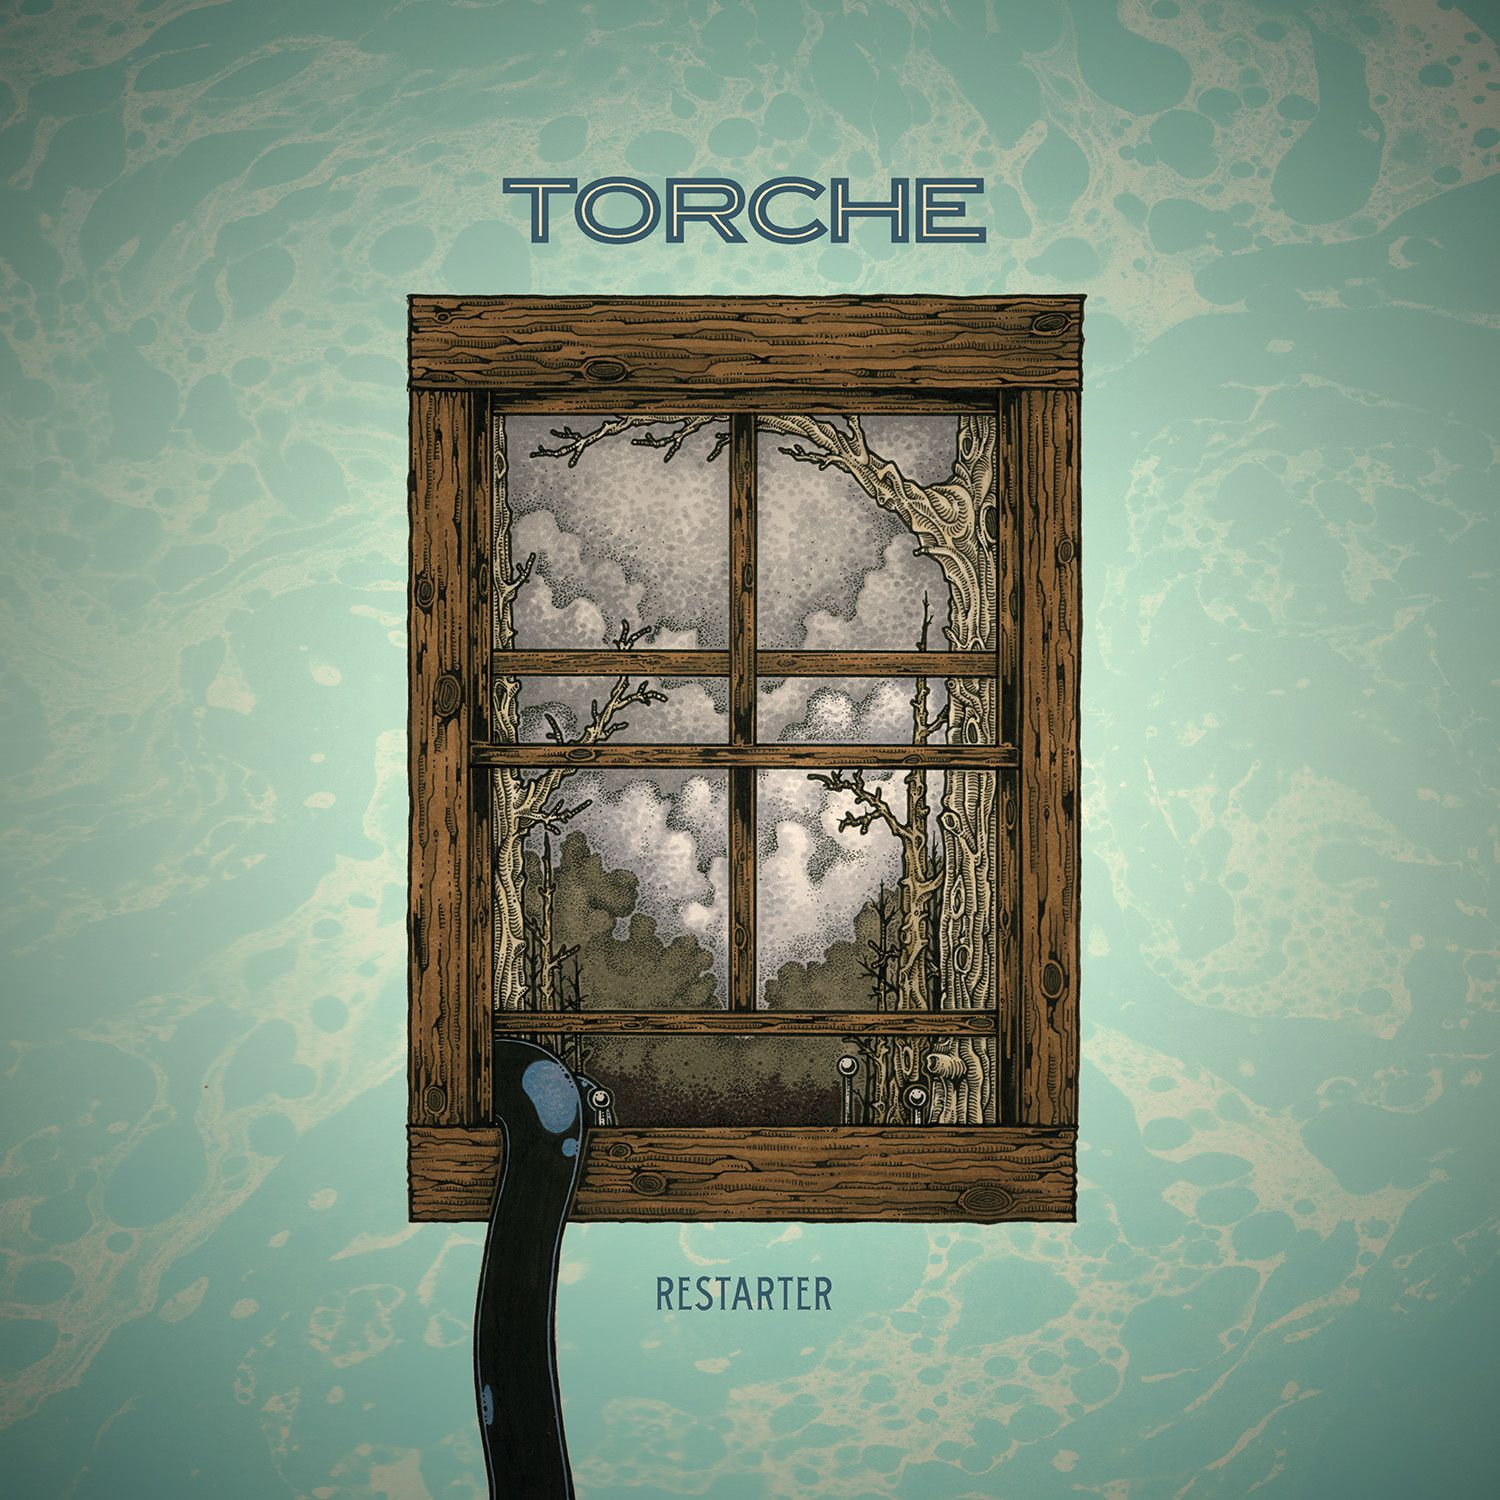 New video from TORCHE